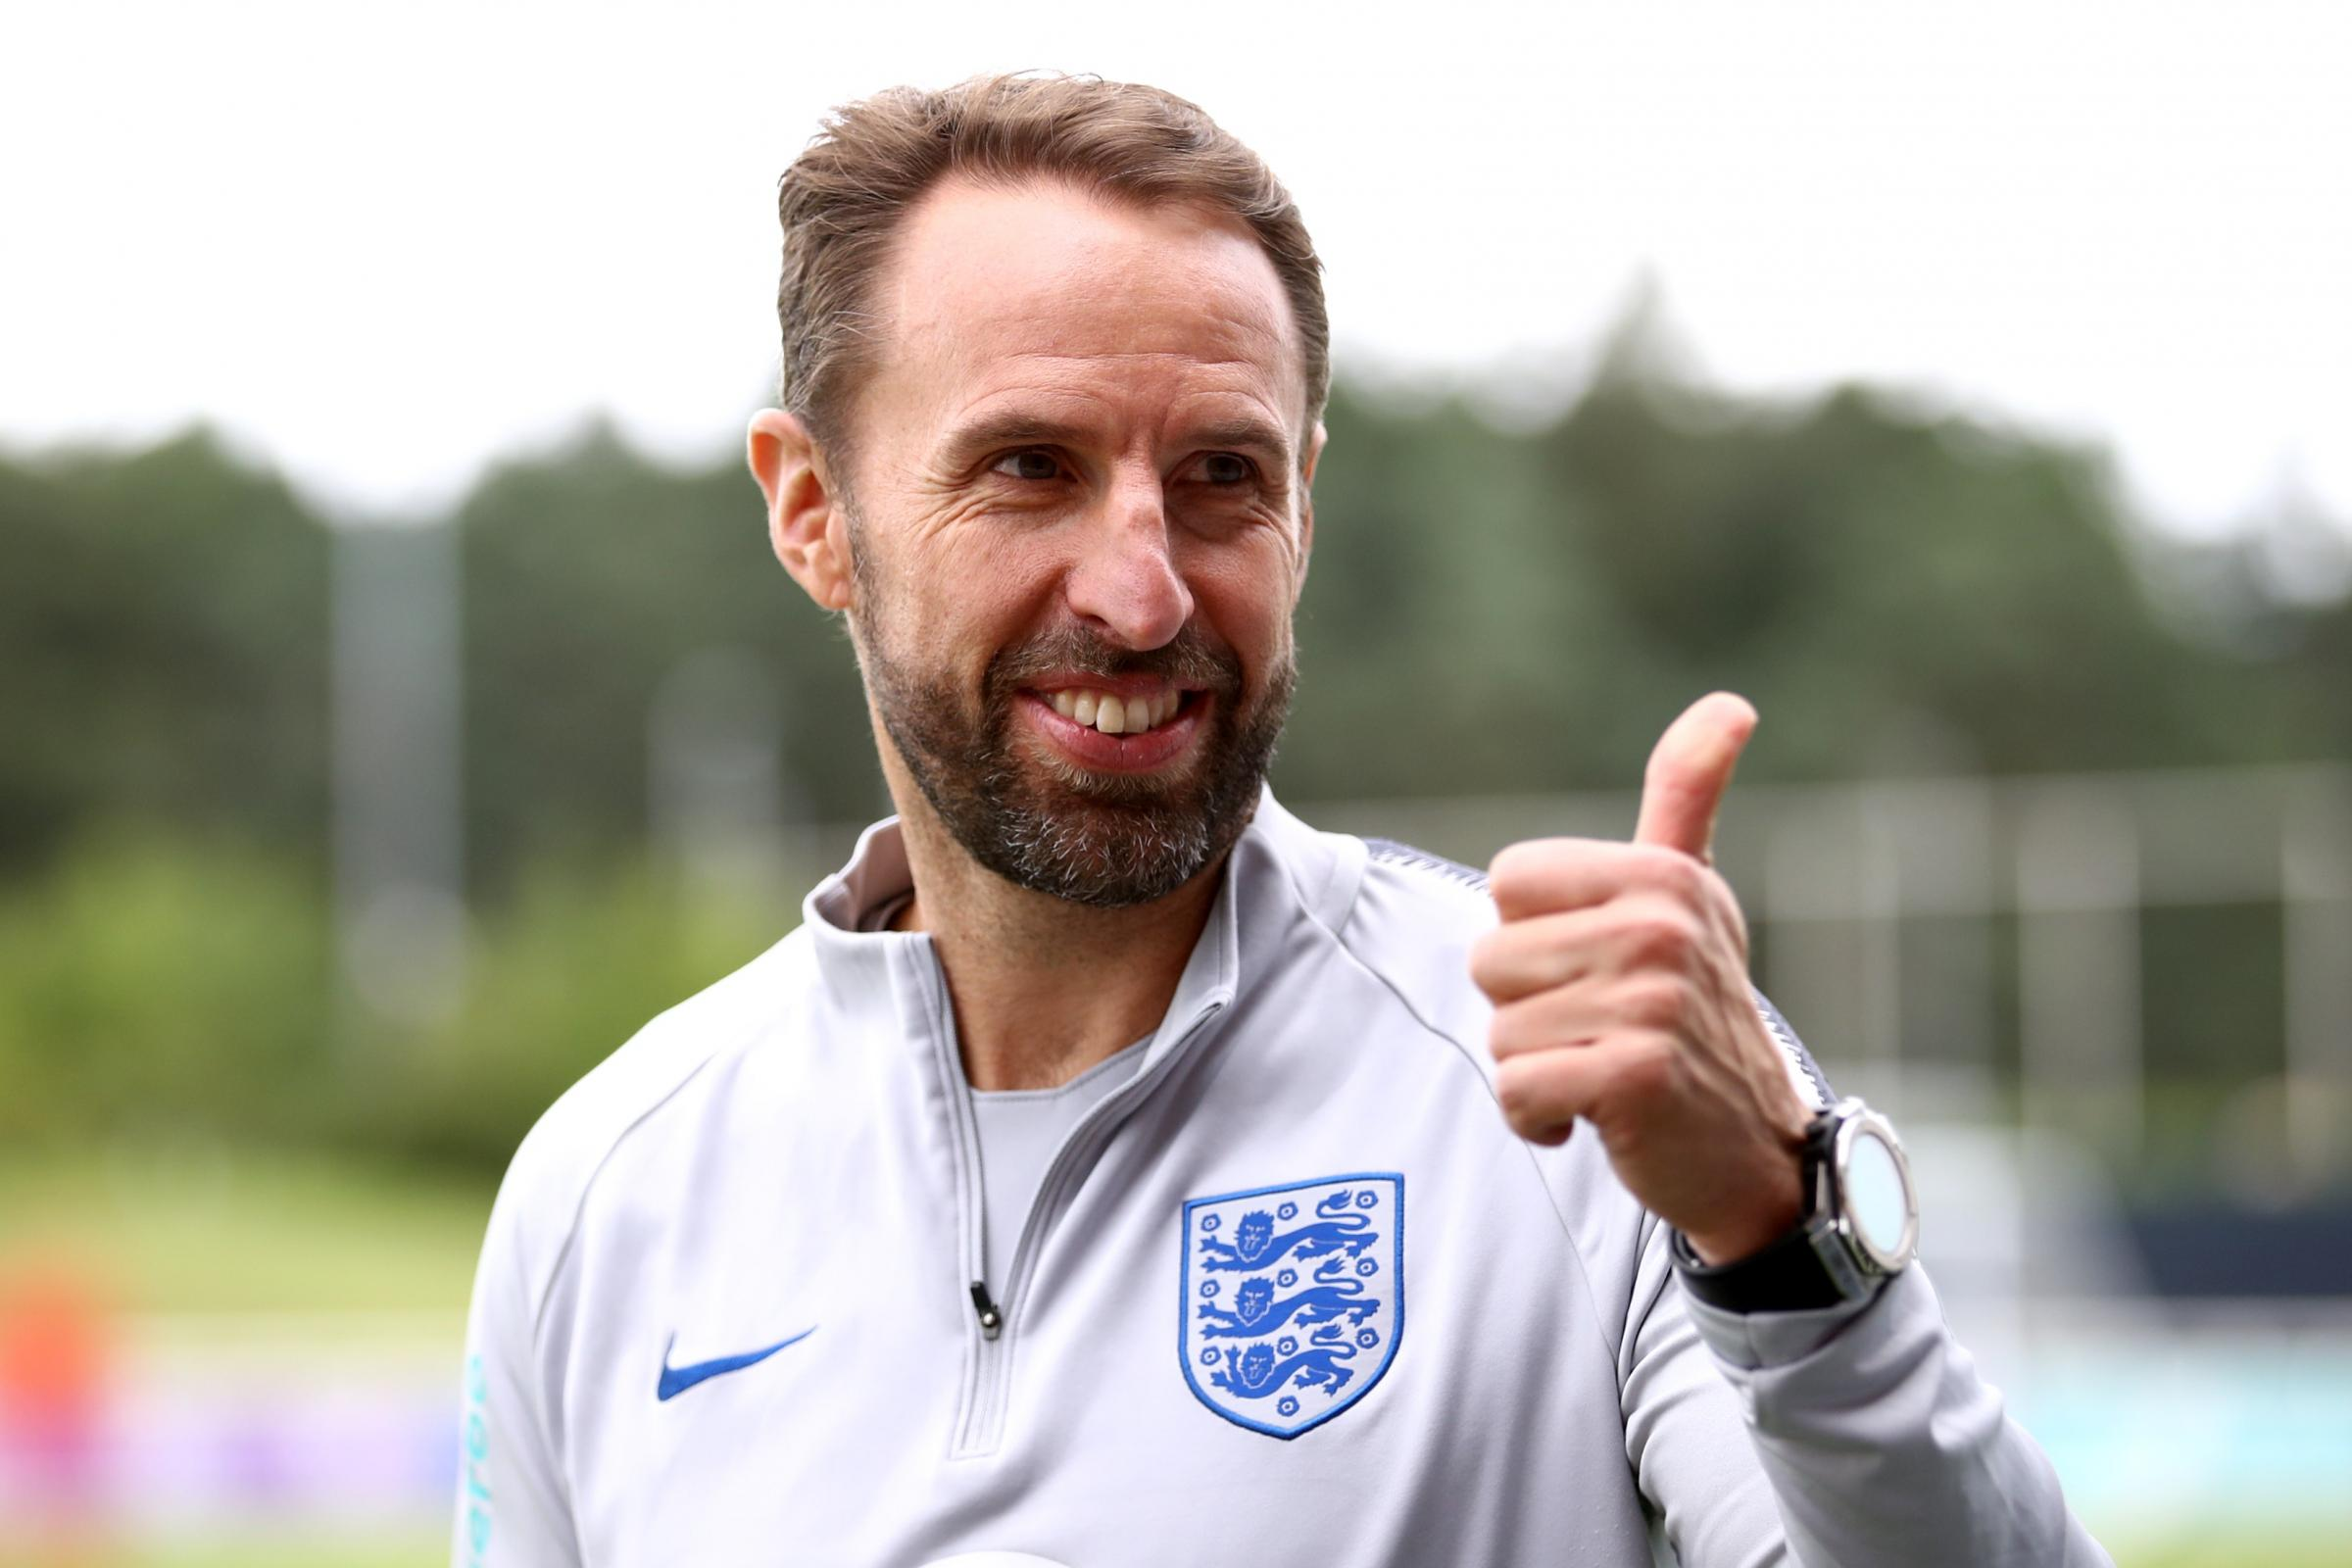 5 talking points ahead of England's Euro 2020 qualifier